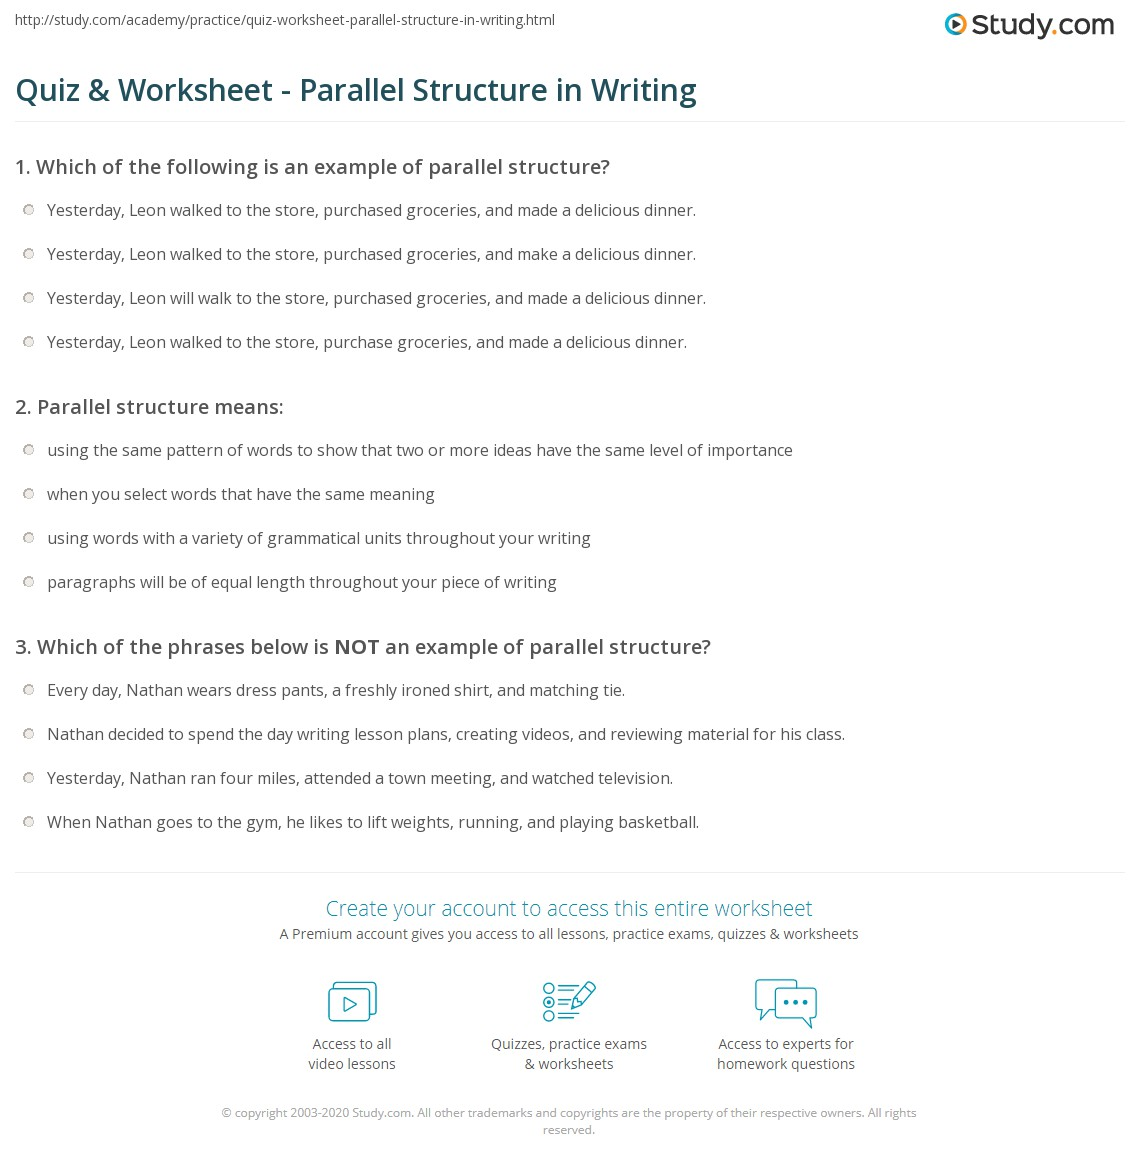 Printables Parallel Structure Worksheet parallel structure worksheet fireyourmentor free printable worksheets quiz in writing study com print what is definition